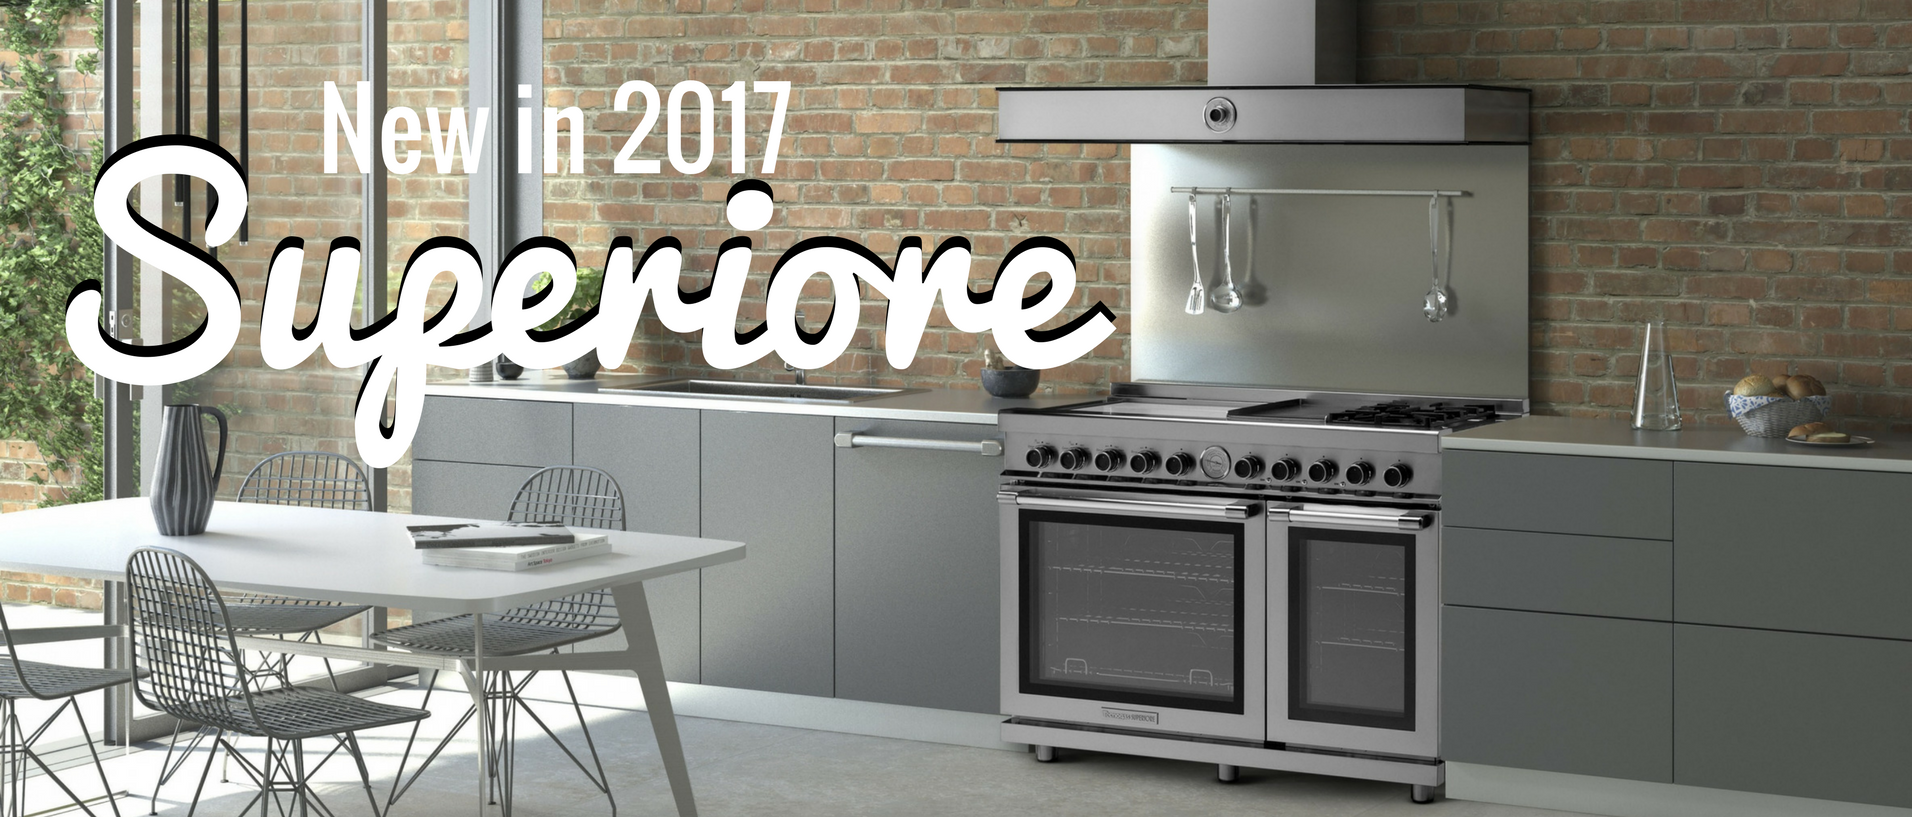 Superiore Appliances 2017 Banner